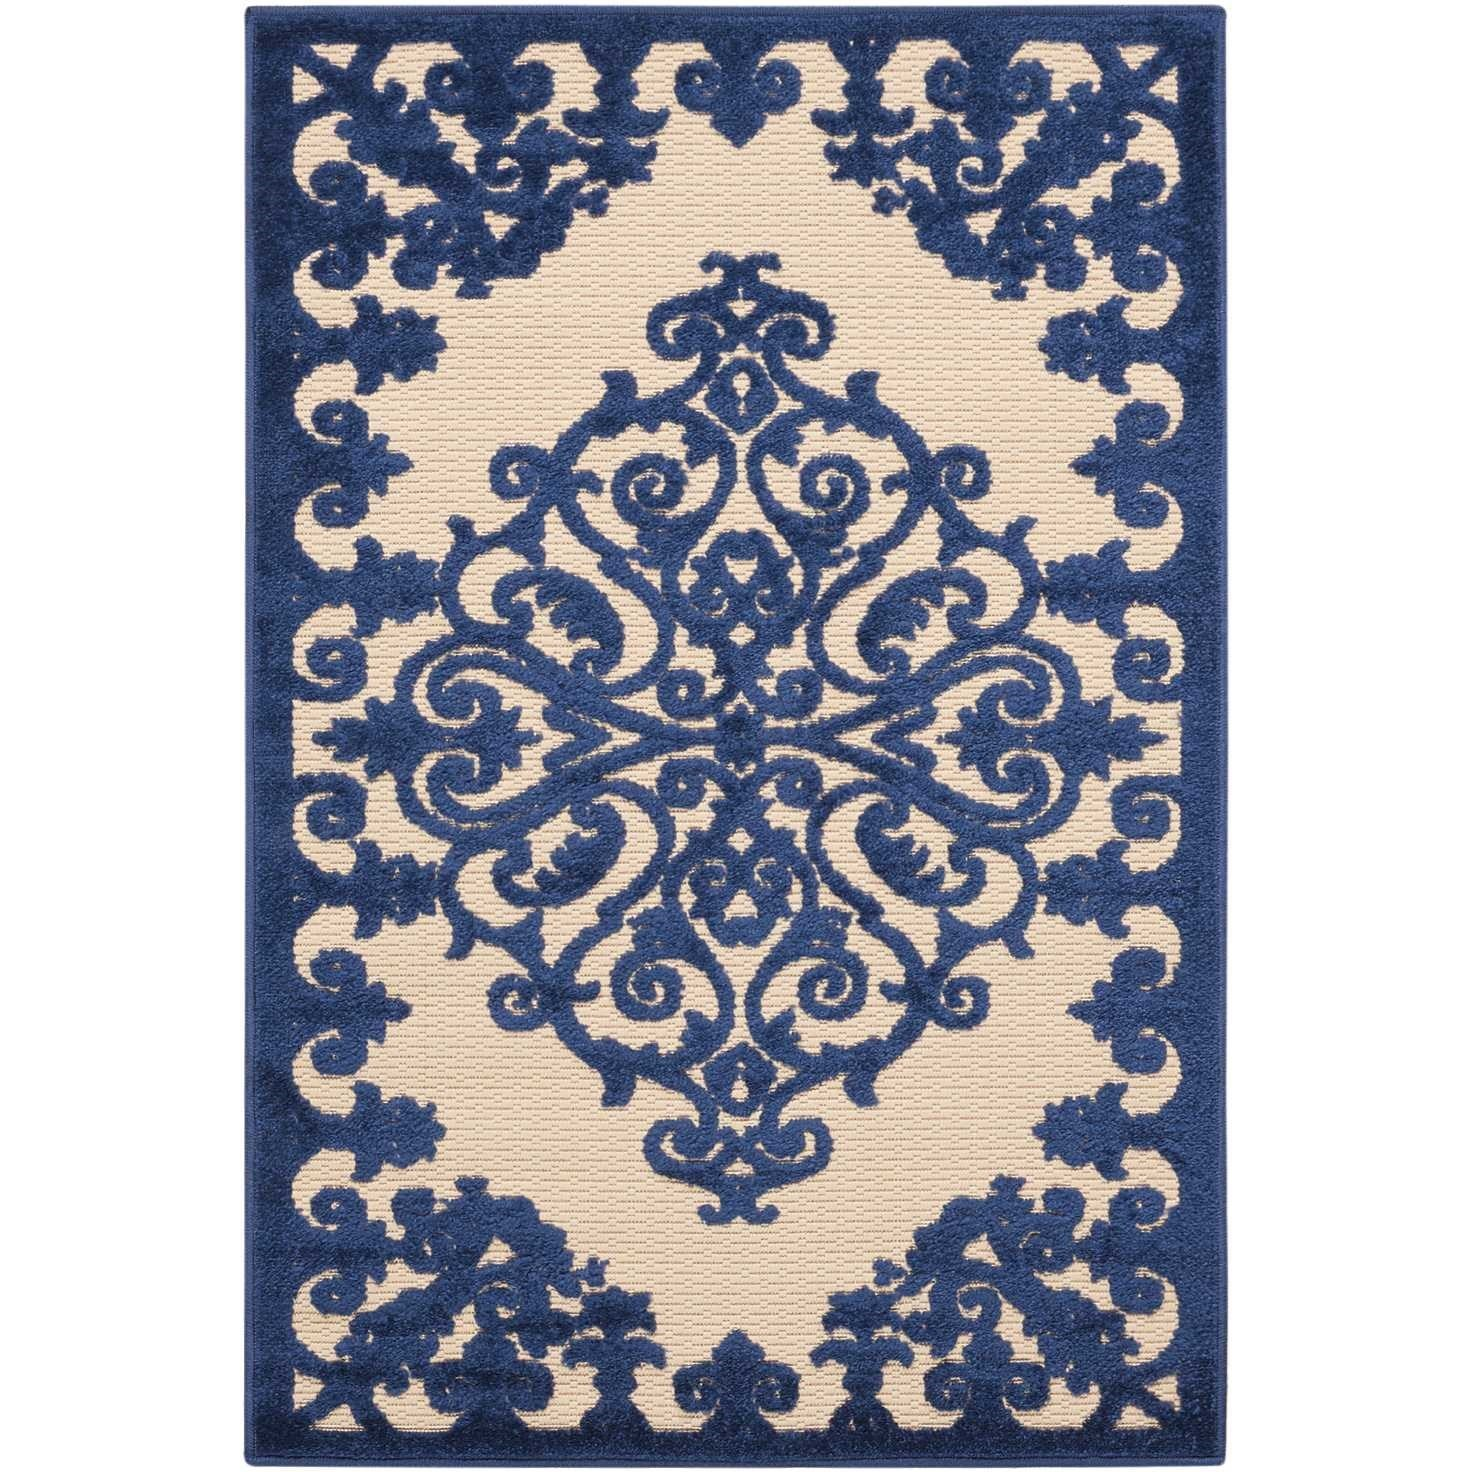 "Aloha 2'8"" x 4' Navy Rectangle Rug by Nourison at Home Collections Furniture"